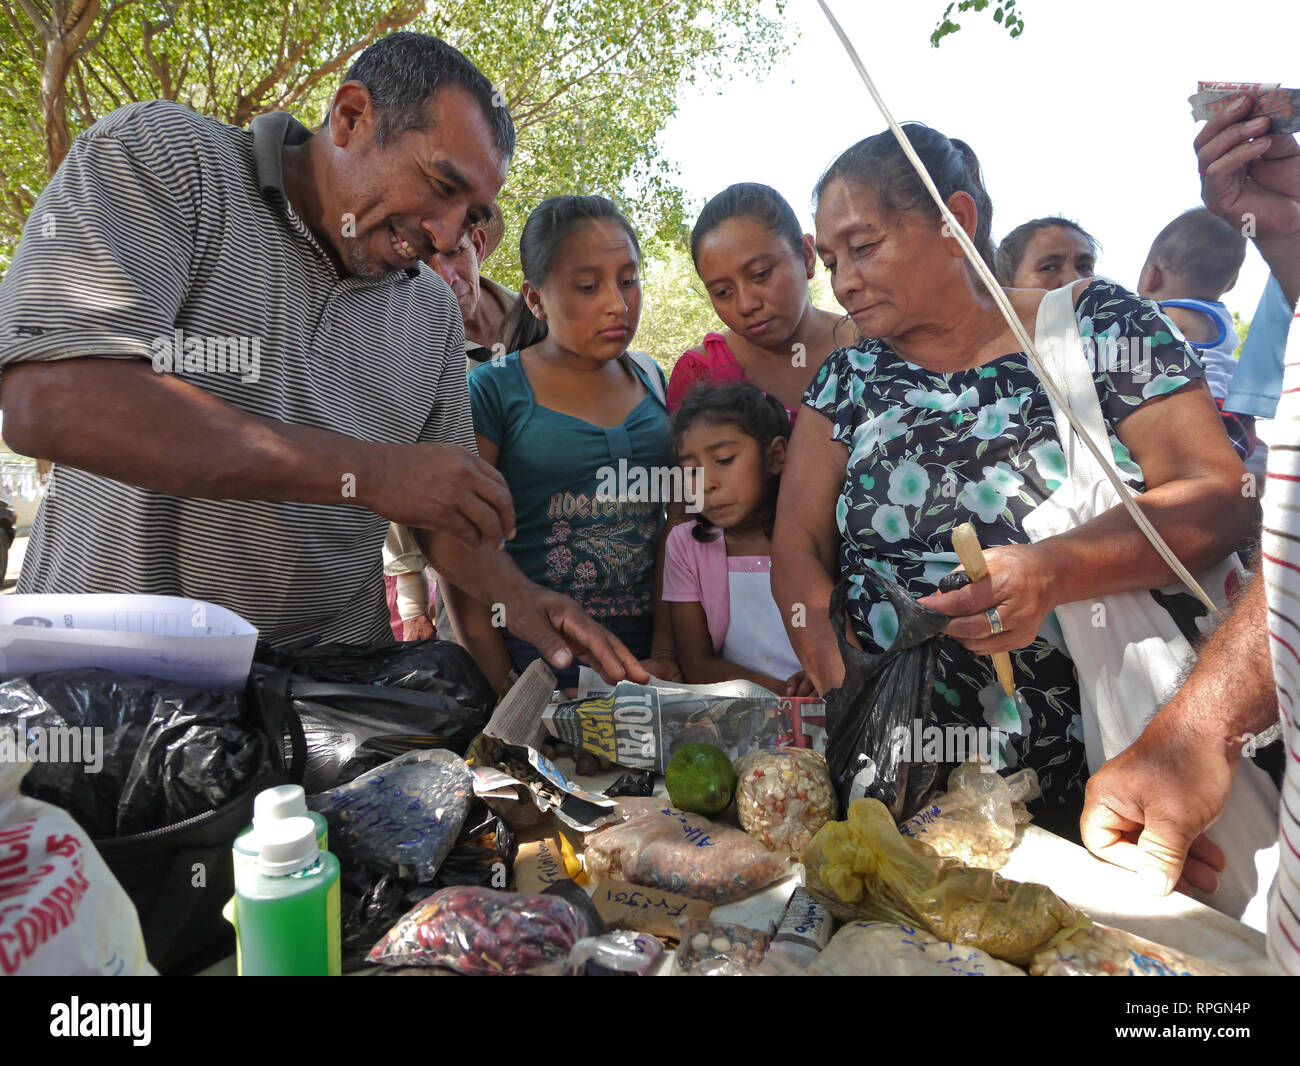 El Salvador  Seed exchange. An event organized by JDS so that local farmers can exchange seeds and other produce such as rabbits, honey, fish and other food products, - Stock Image